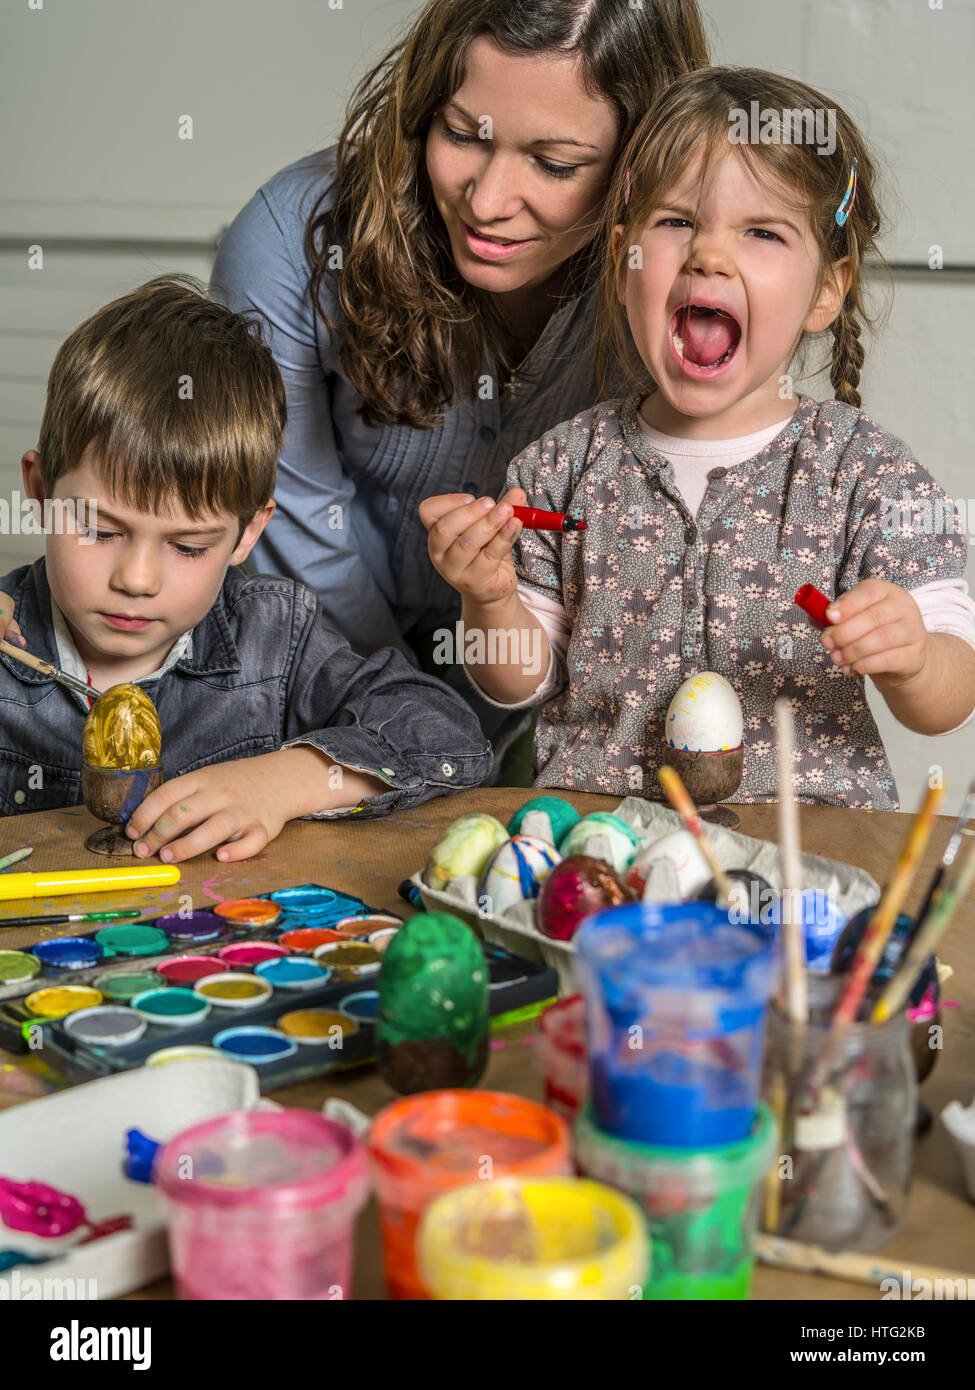 Photo of a mother and her children painting and decorating stock photo of a mother and her children painting and decorating hard boiled eggs for easter ccuart Gallery